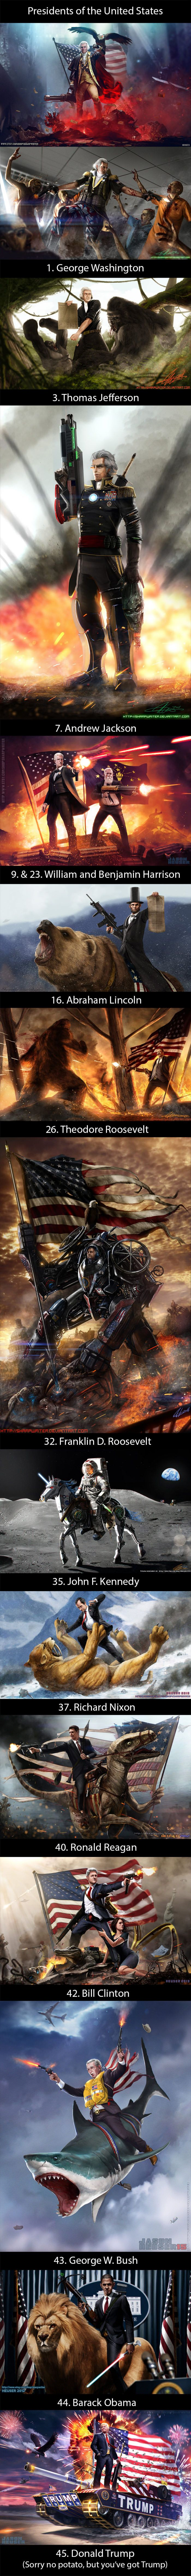 The most American presidental paintings (sharpwriter)